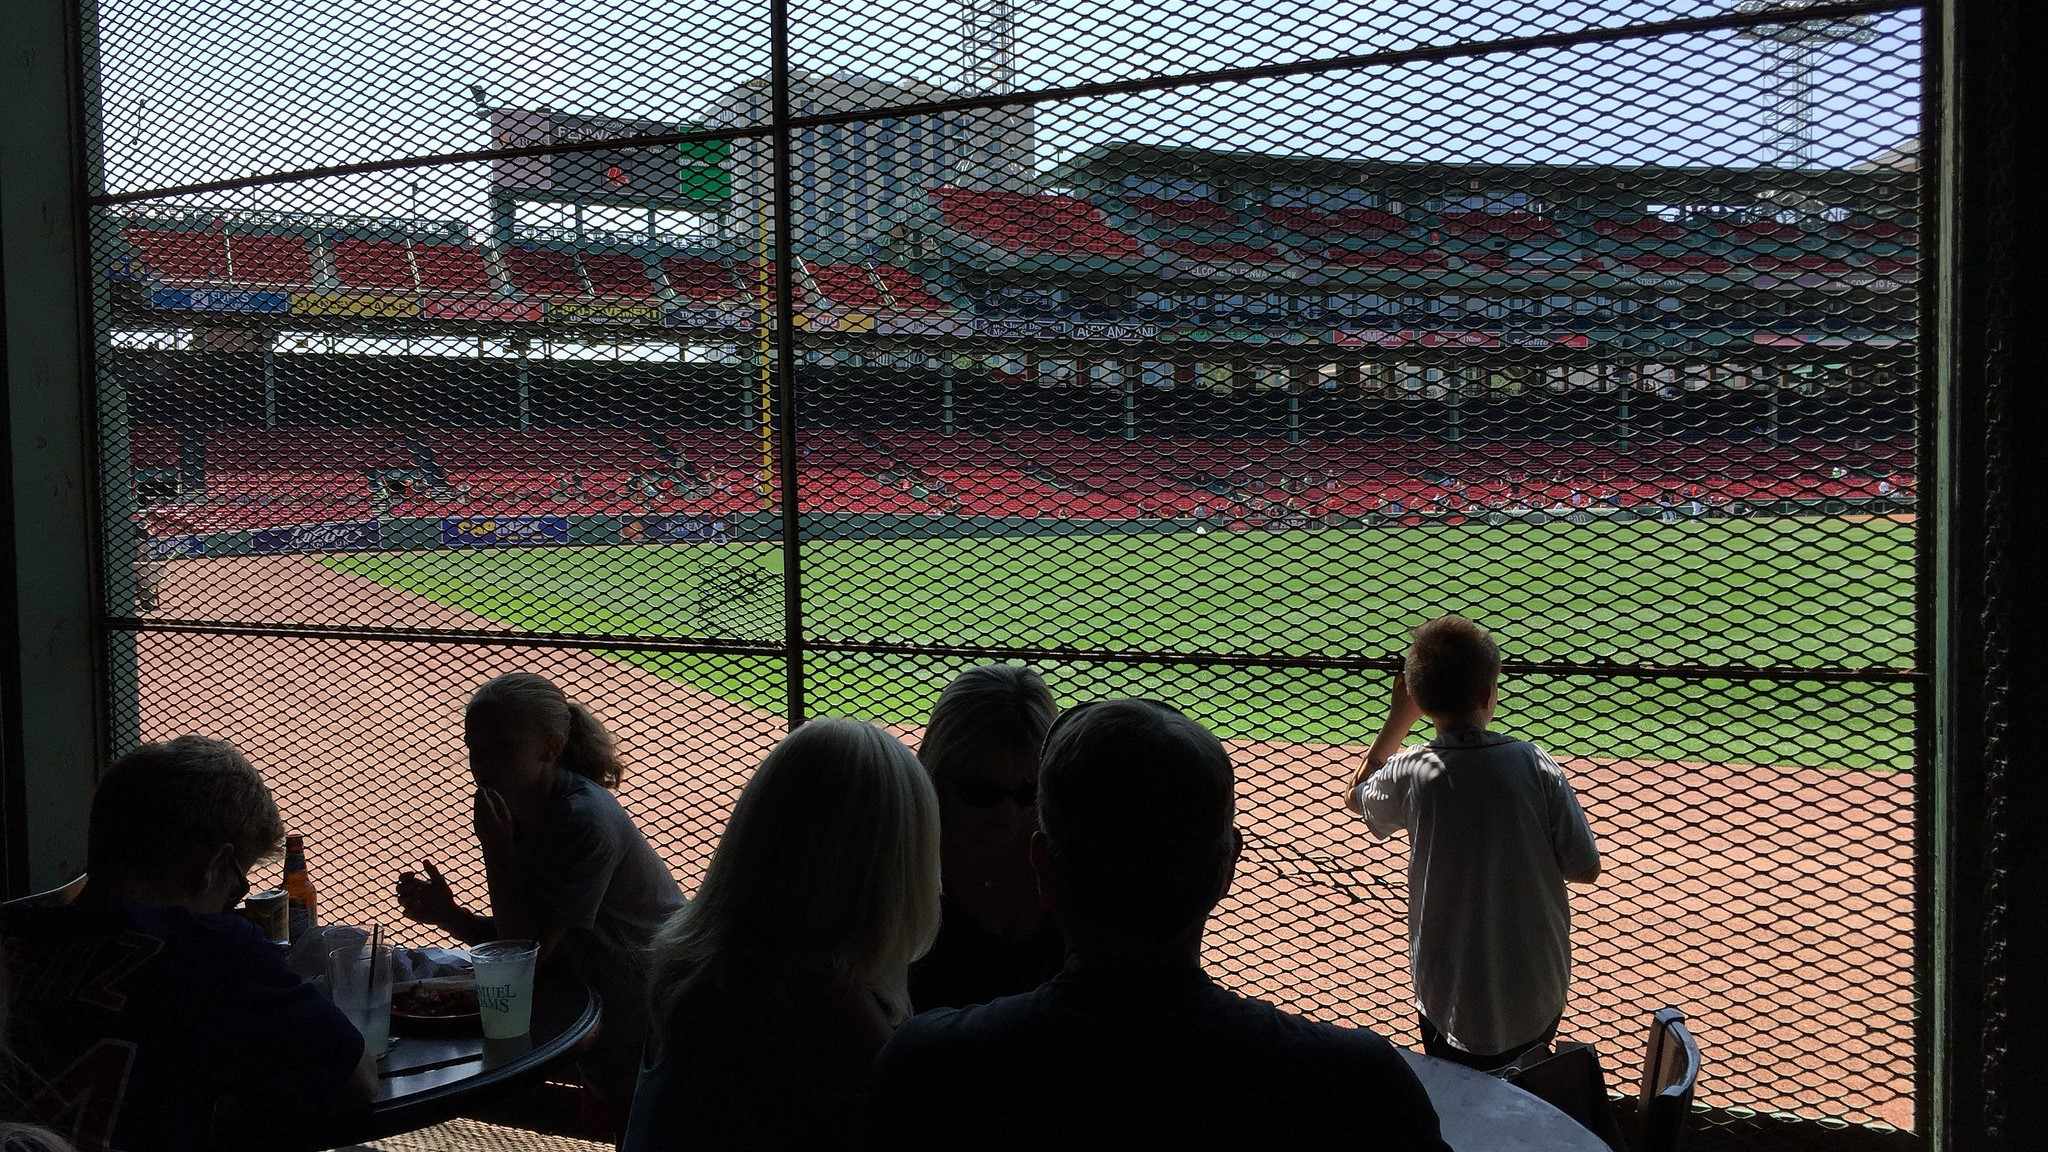 Another great drinking experience. I sipped a Harpoon IPA from this pub  inside  Fenway Park. That kid is looking out longingly at the field where the Red Sox would soon pummel the White Sox.